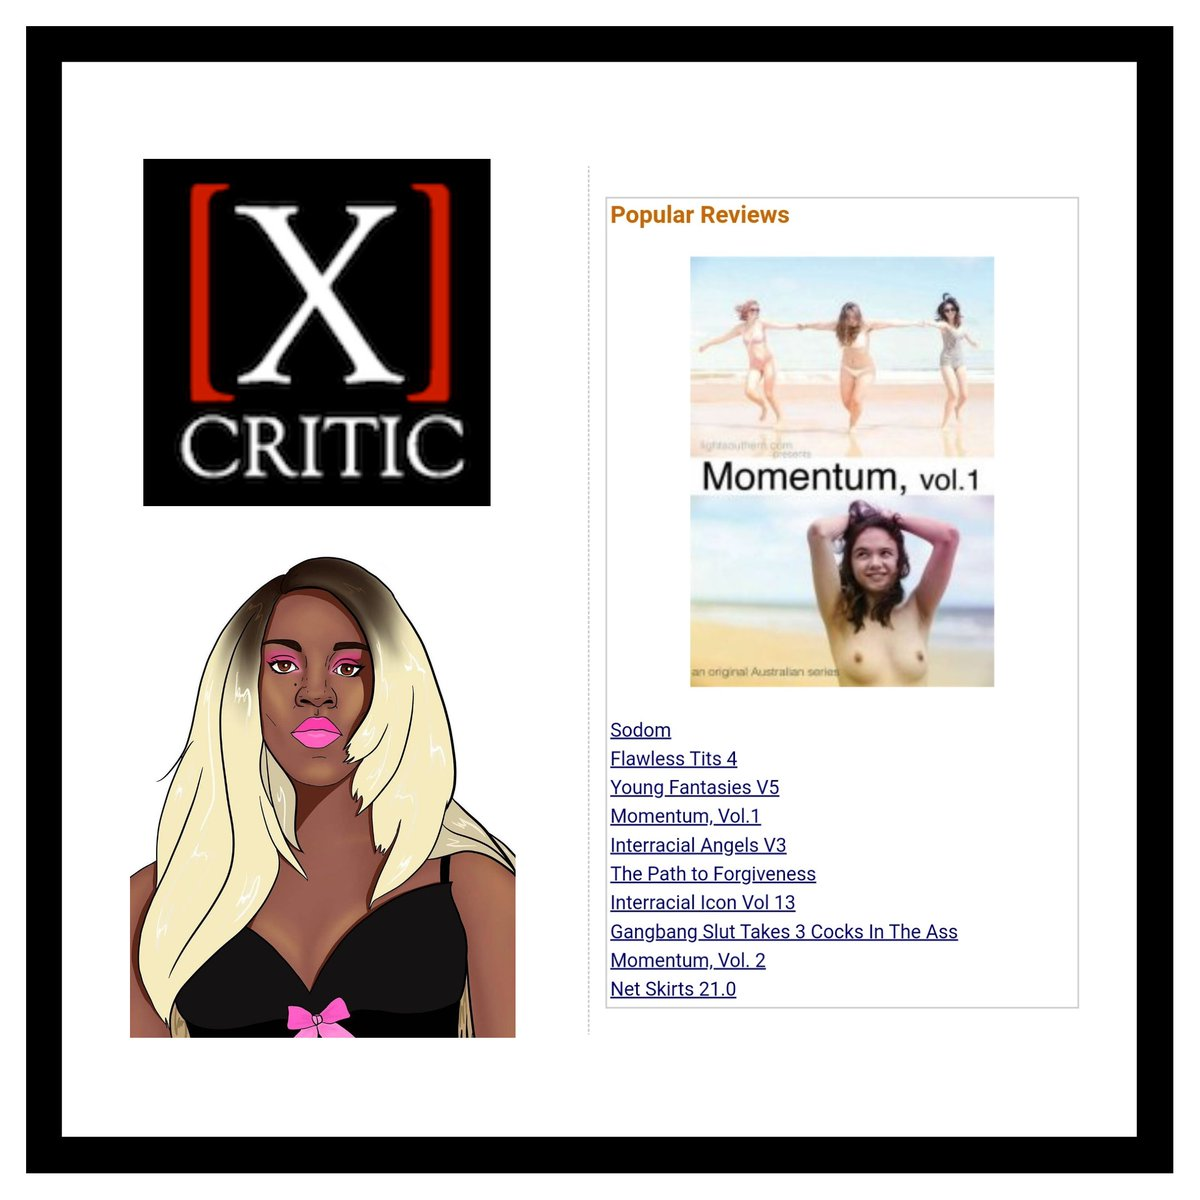 Oh wow! My first two film reviews are in the top 10 most popular at @xcritic?  Amazing! I'm grateful. Visit the site, and check this link for what else I have to come: